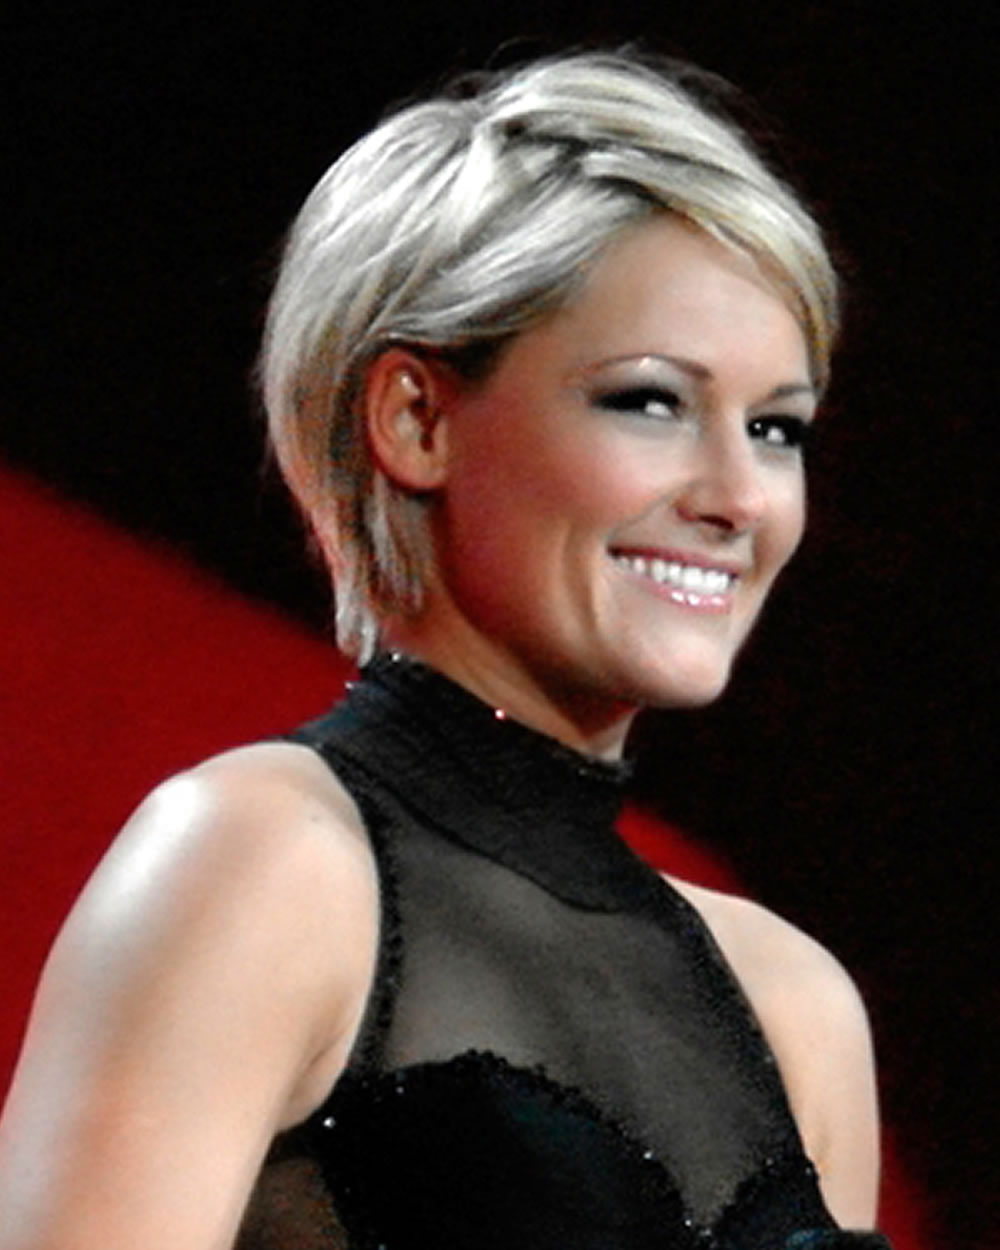 Feminine Short Hairstyles And Very Short Pixie Hair Colors – Page 6 With Regard To Feminine Short Haircuts (View 16 of 25)